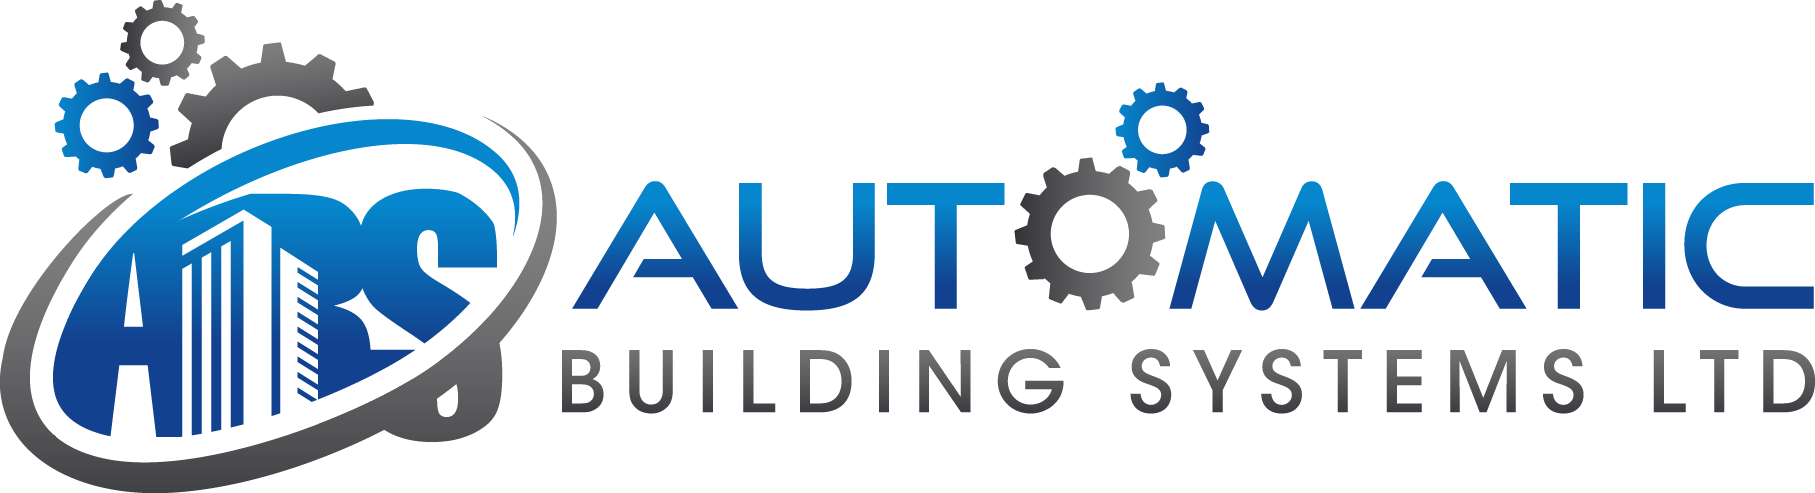 AUTOMATIC BUILDING SYSTEMS LTD